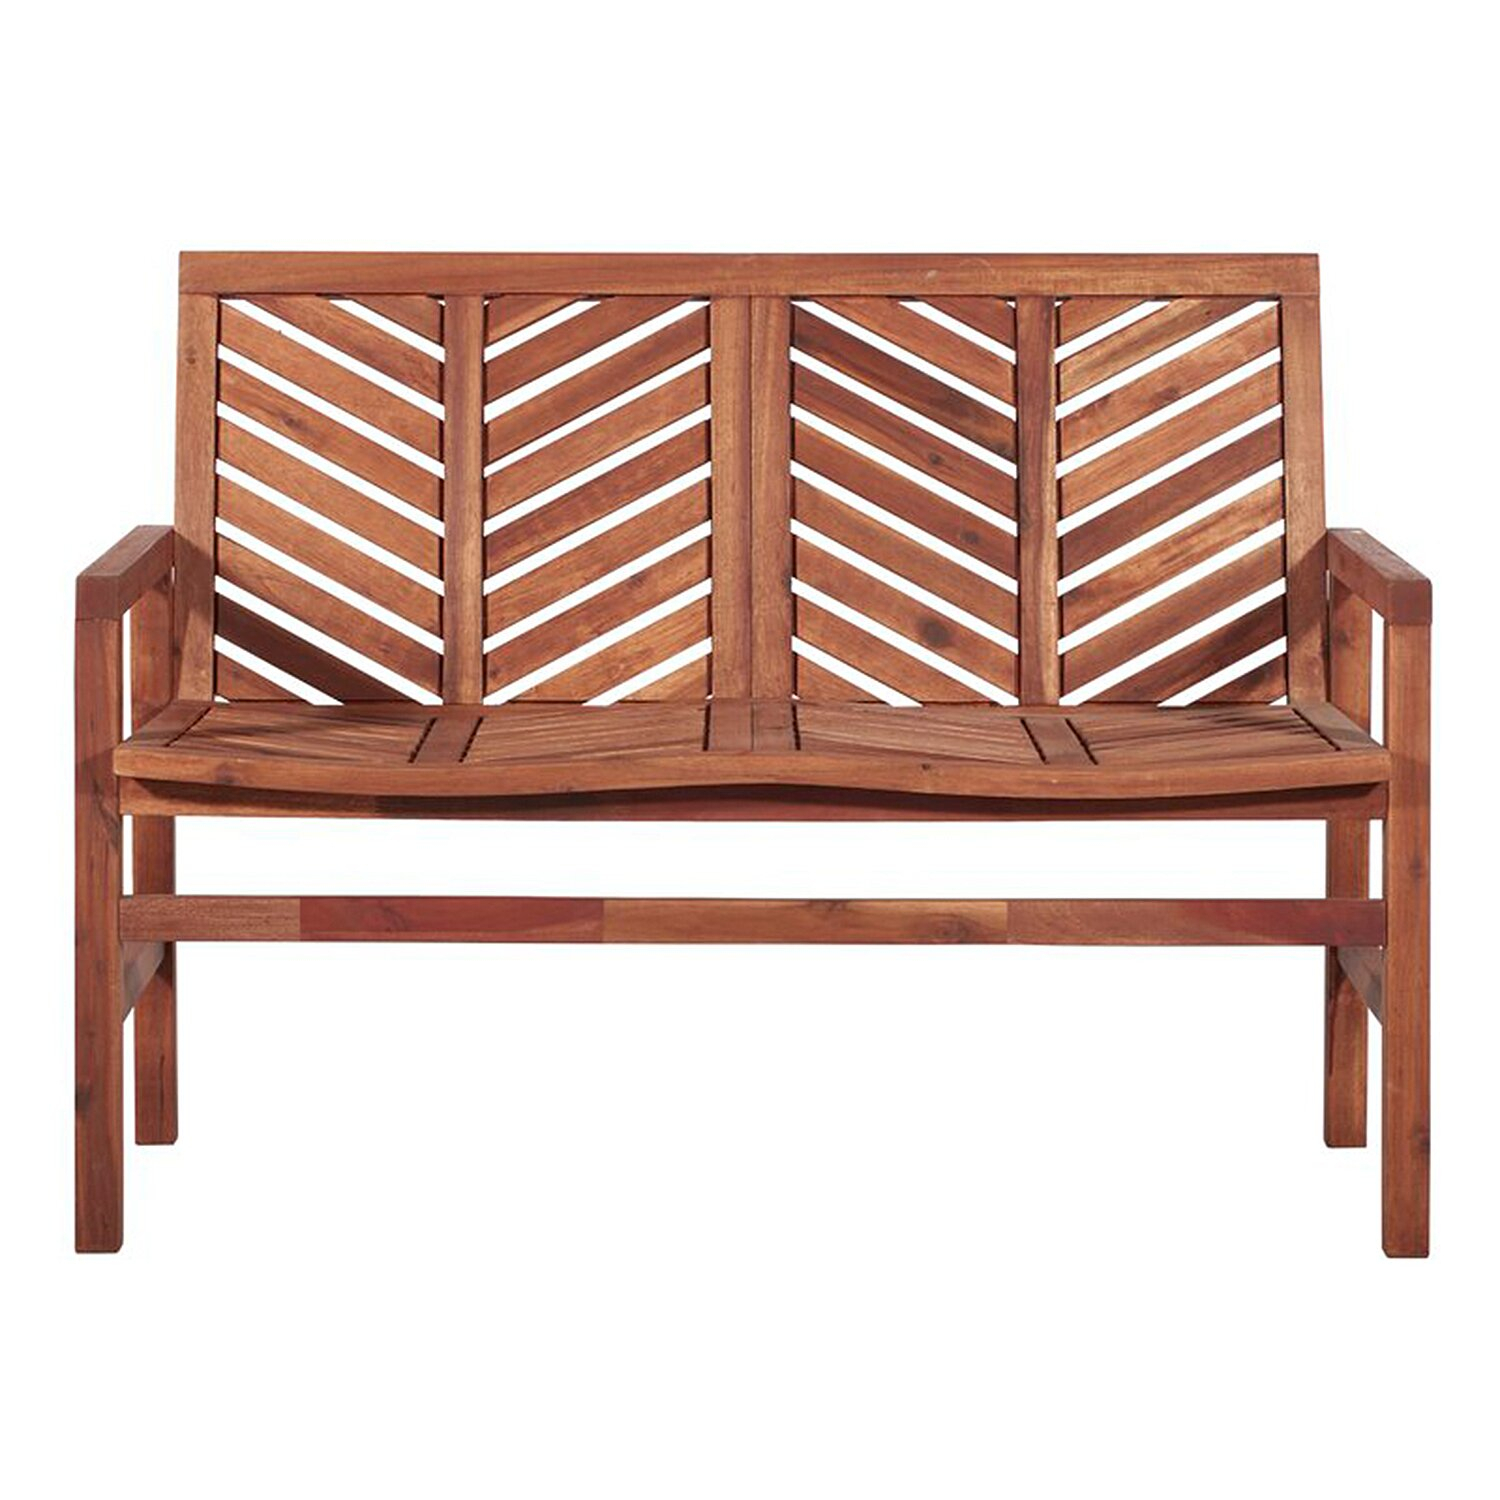 The 10 Best Deals From Wayfair'S Outdoor Furniture Sale Intended For Skoog Chevron Wooden Garden Benches (View 5 of 25)